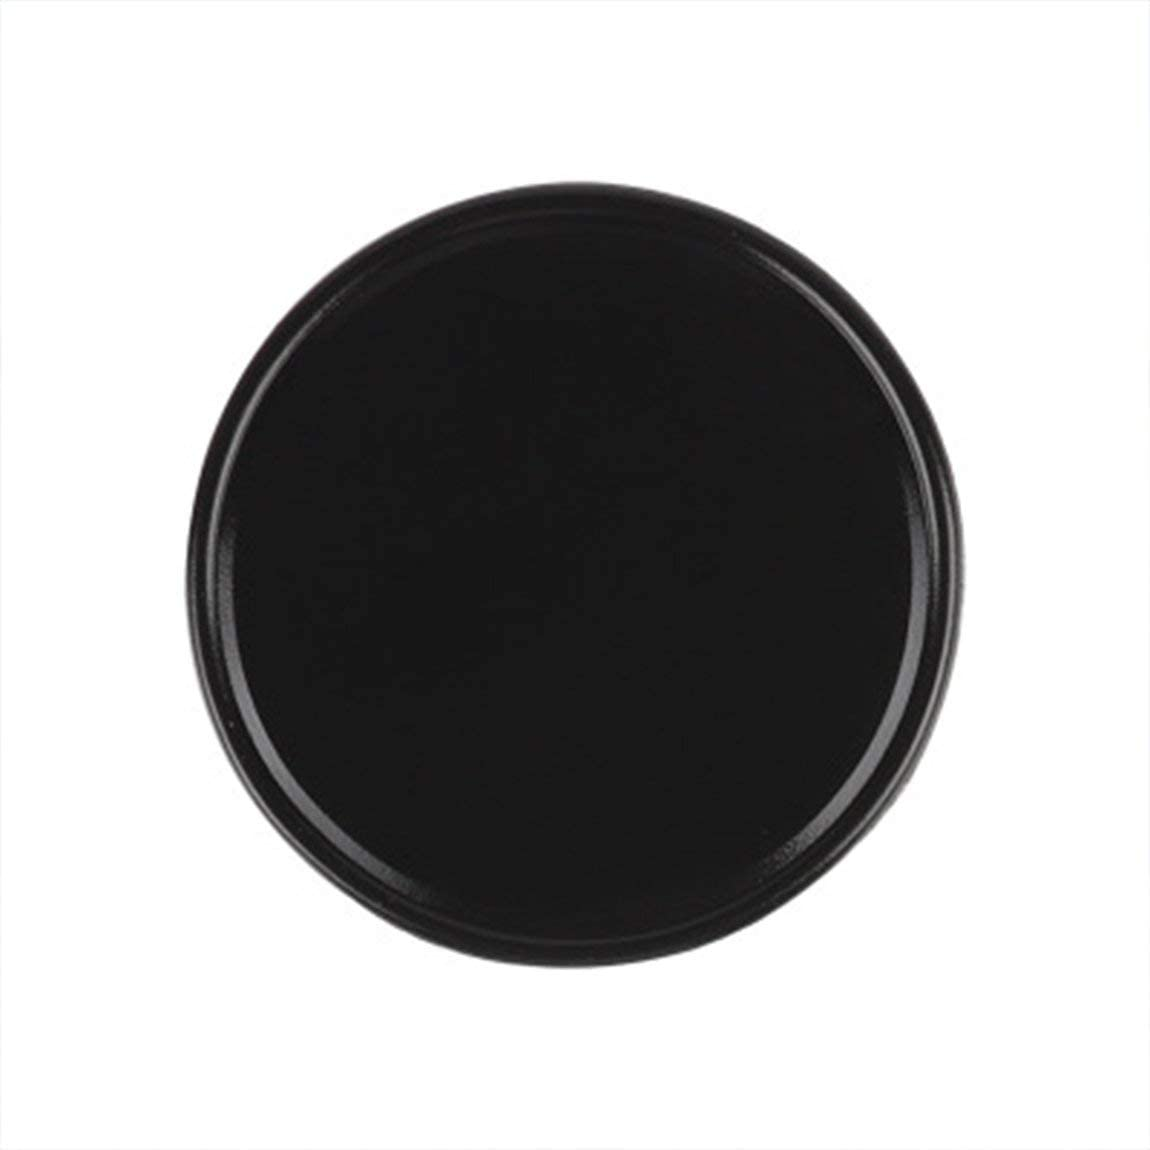 SeniorMar Non-Slip Anti Slide Pad Phone Holder Mat Car Dashboard Sticky Pad Round Spider Adhesive Mat for Cell Phone//Electronic Devices